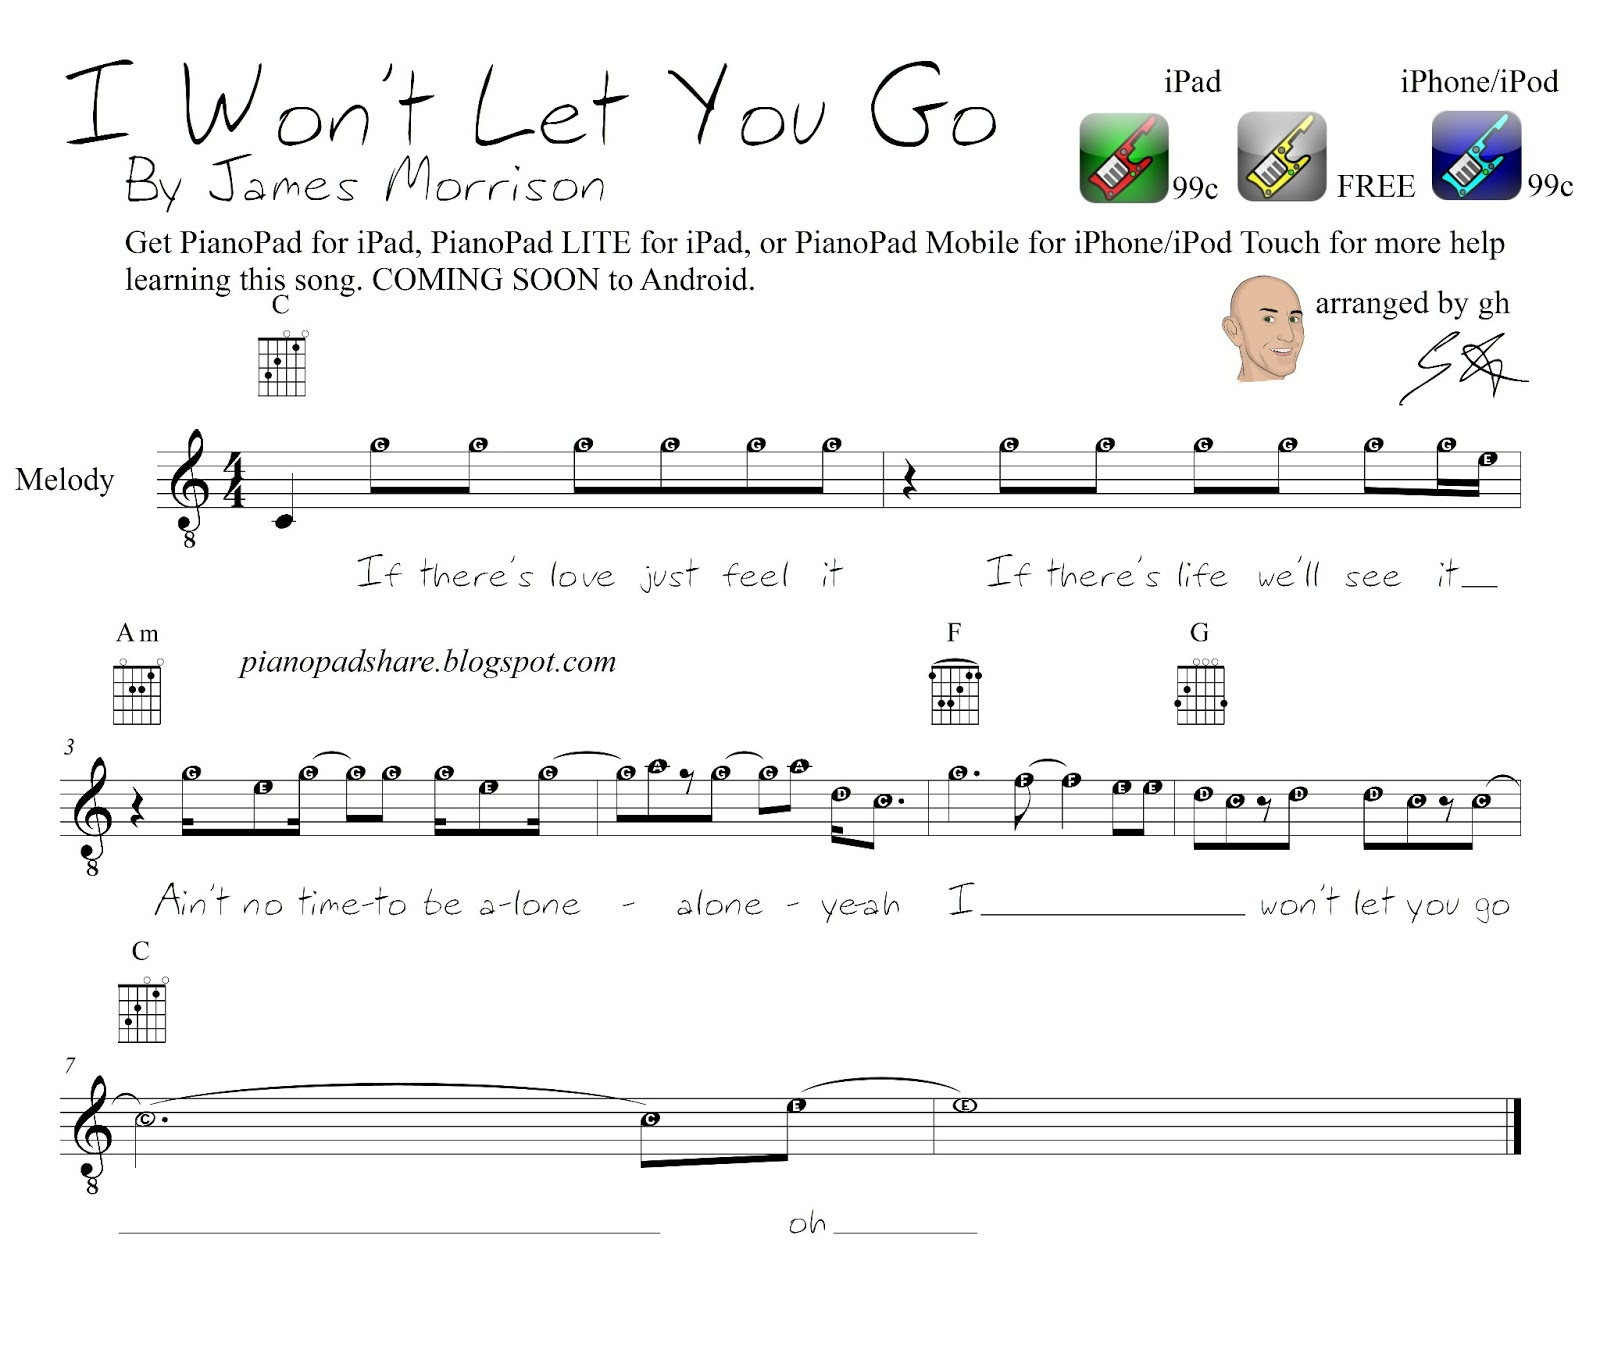 Let It Go Lyrics Guitar Chords